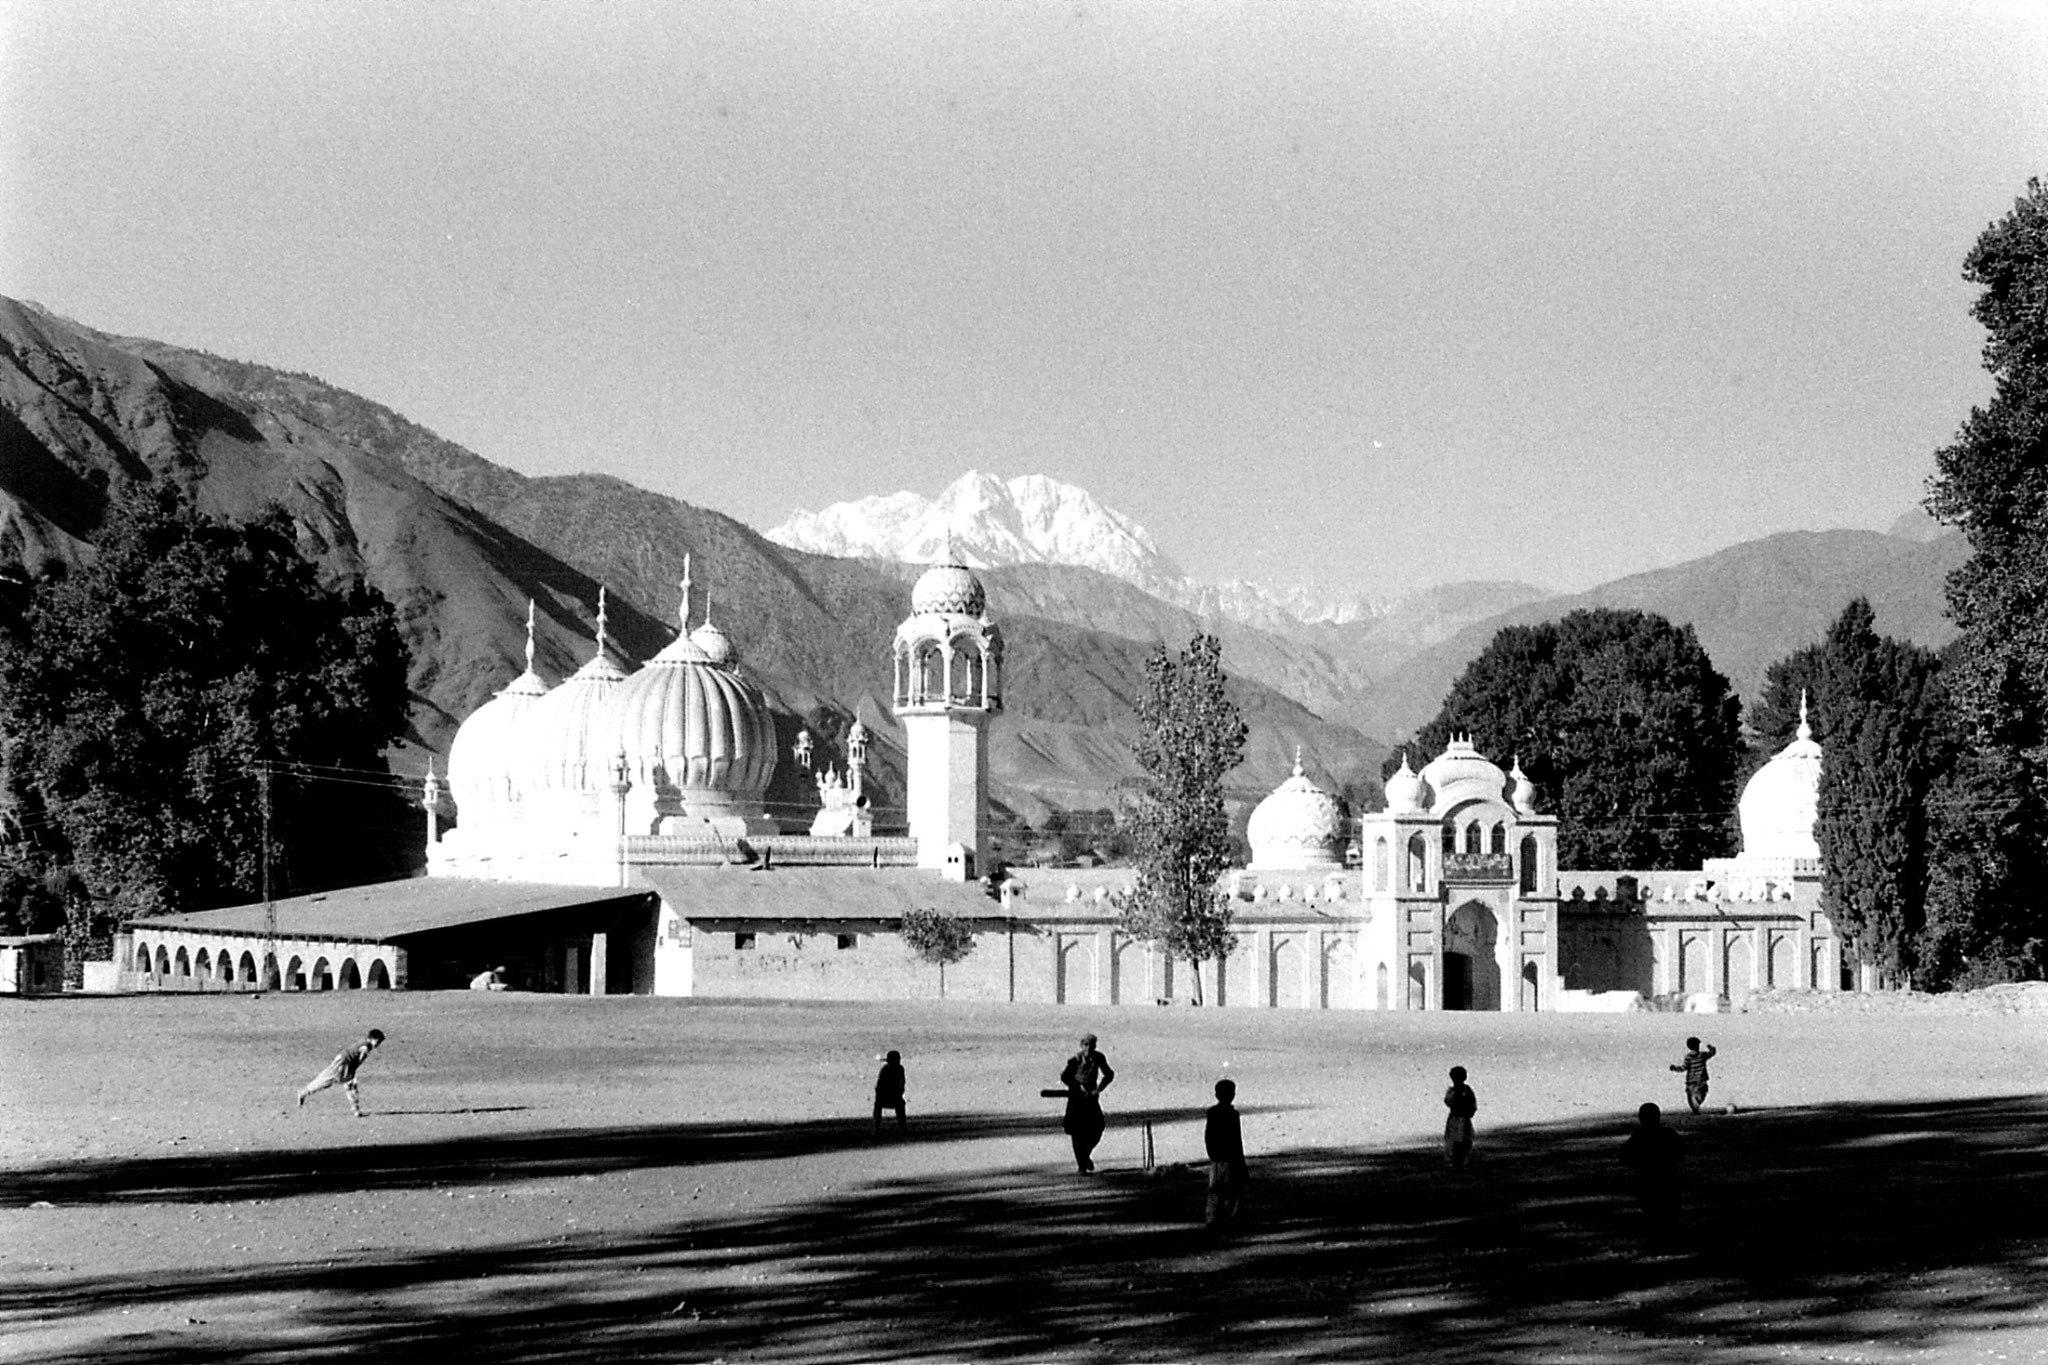 28/10/1989: 19: Chitral, mosque, Tirich Mir and cricket match